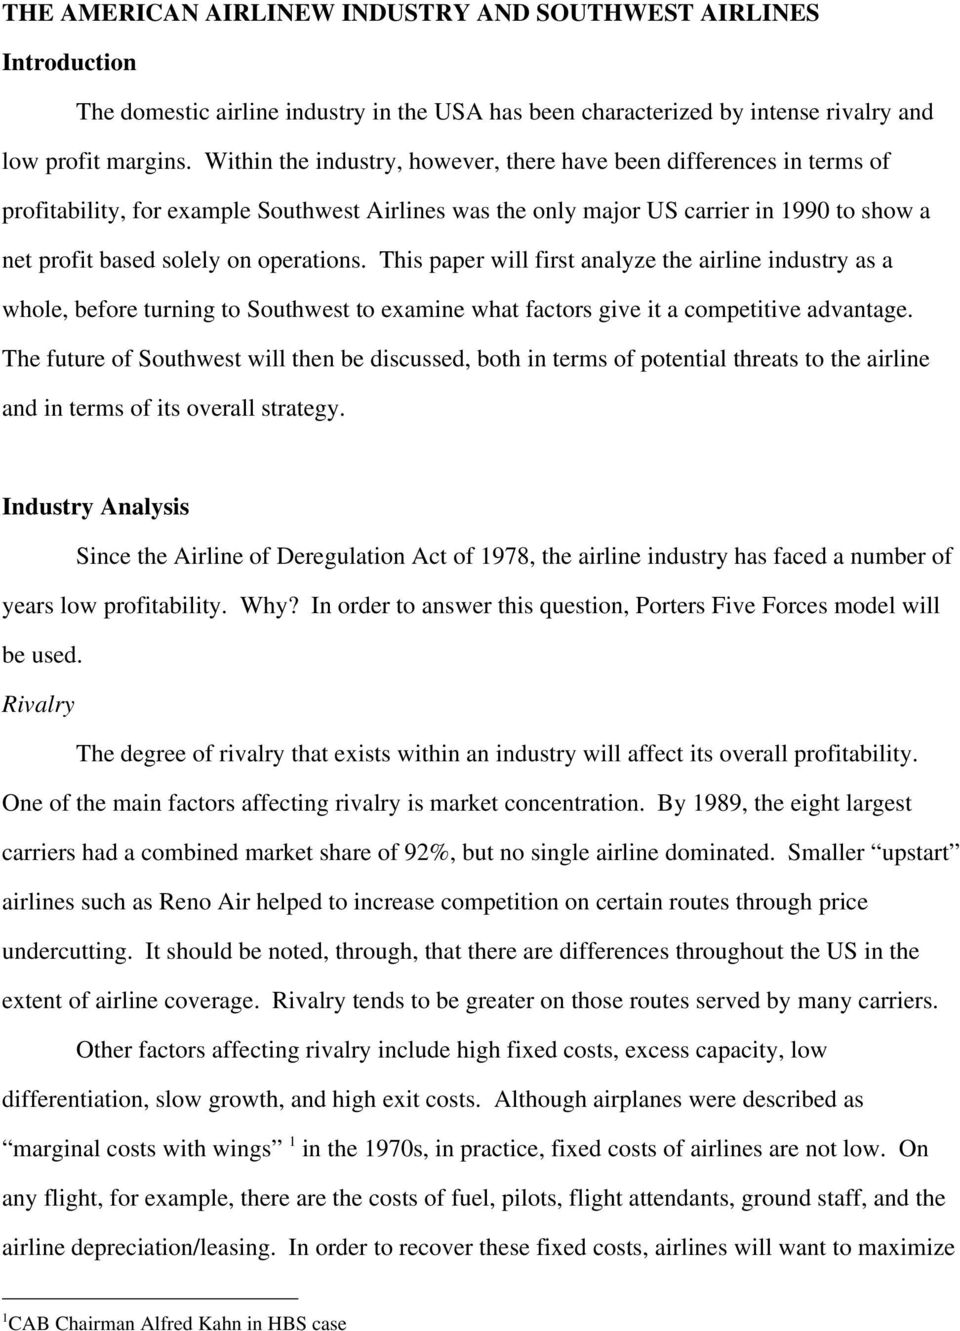 operations. This paper will first analyze the airline industry as a whole, before turning to Southwest to examine what factors give it a competitive advantage.